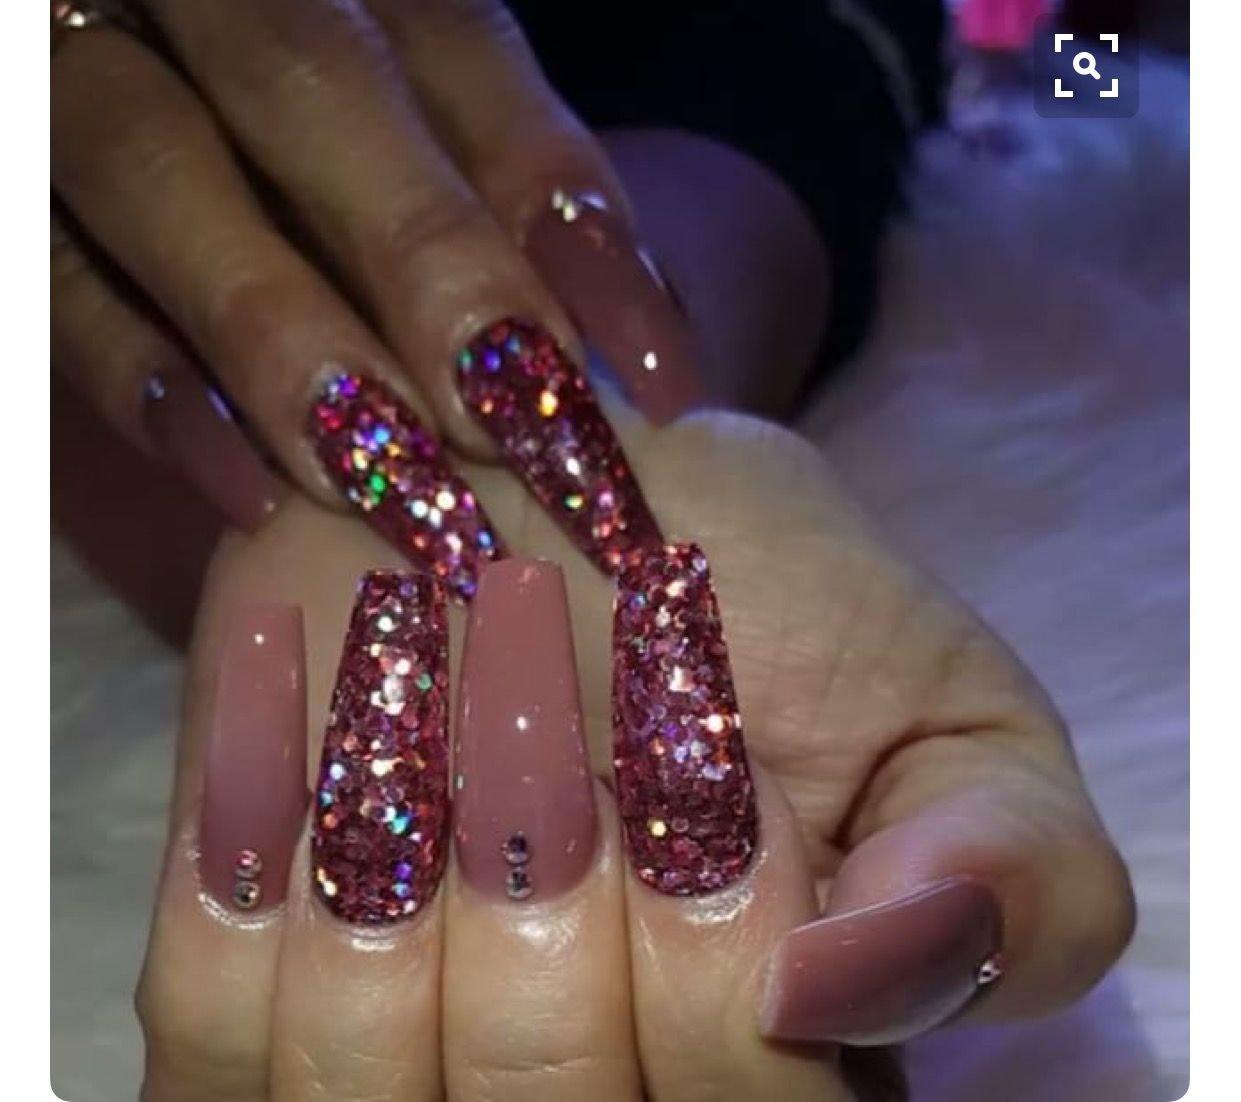 Instagram Ideas, Long Nails, Short Nails, Coffin Nail Designs, Nails Design,  Coffin Nails, Acrylic Nails, Acrylics, Kylie Jenner - Pin By Jancy Lopez Rivera On Coffin Nail Design Pinterest Coffin